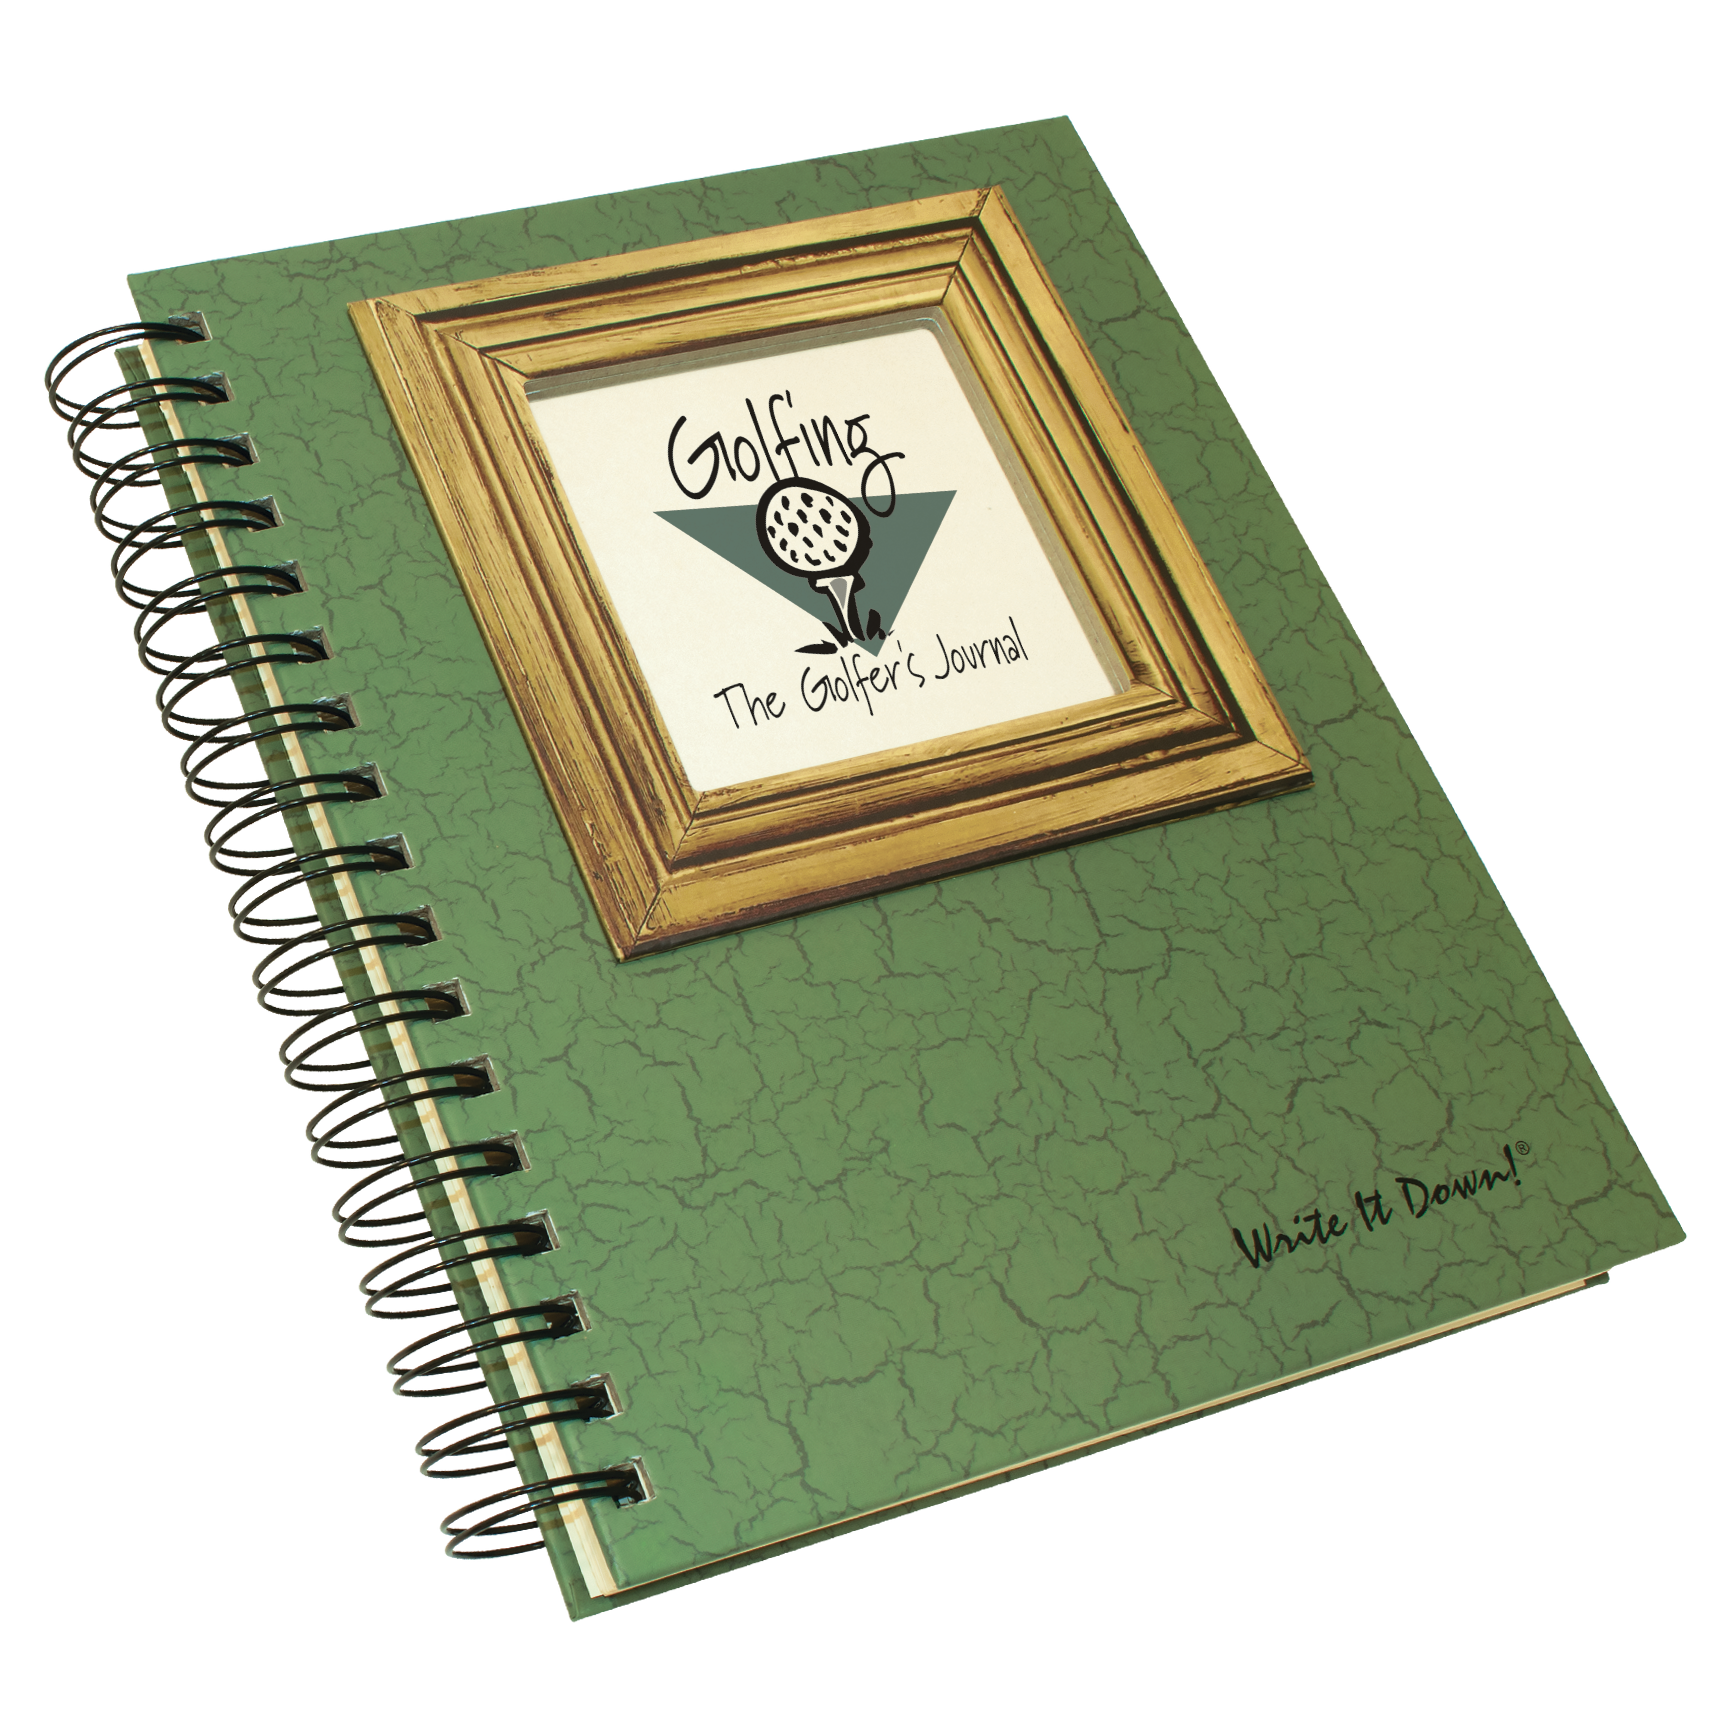 Golfing The Golfer's Journal